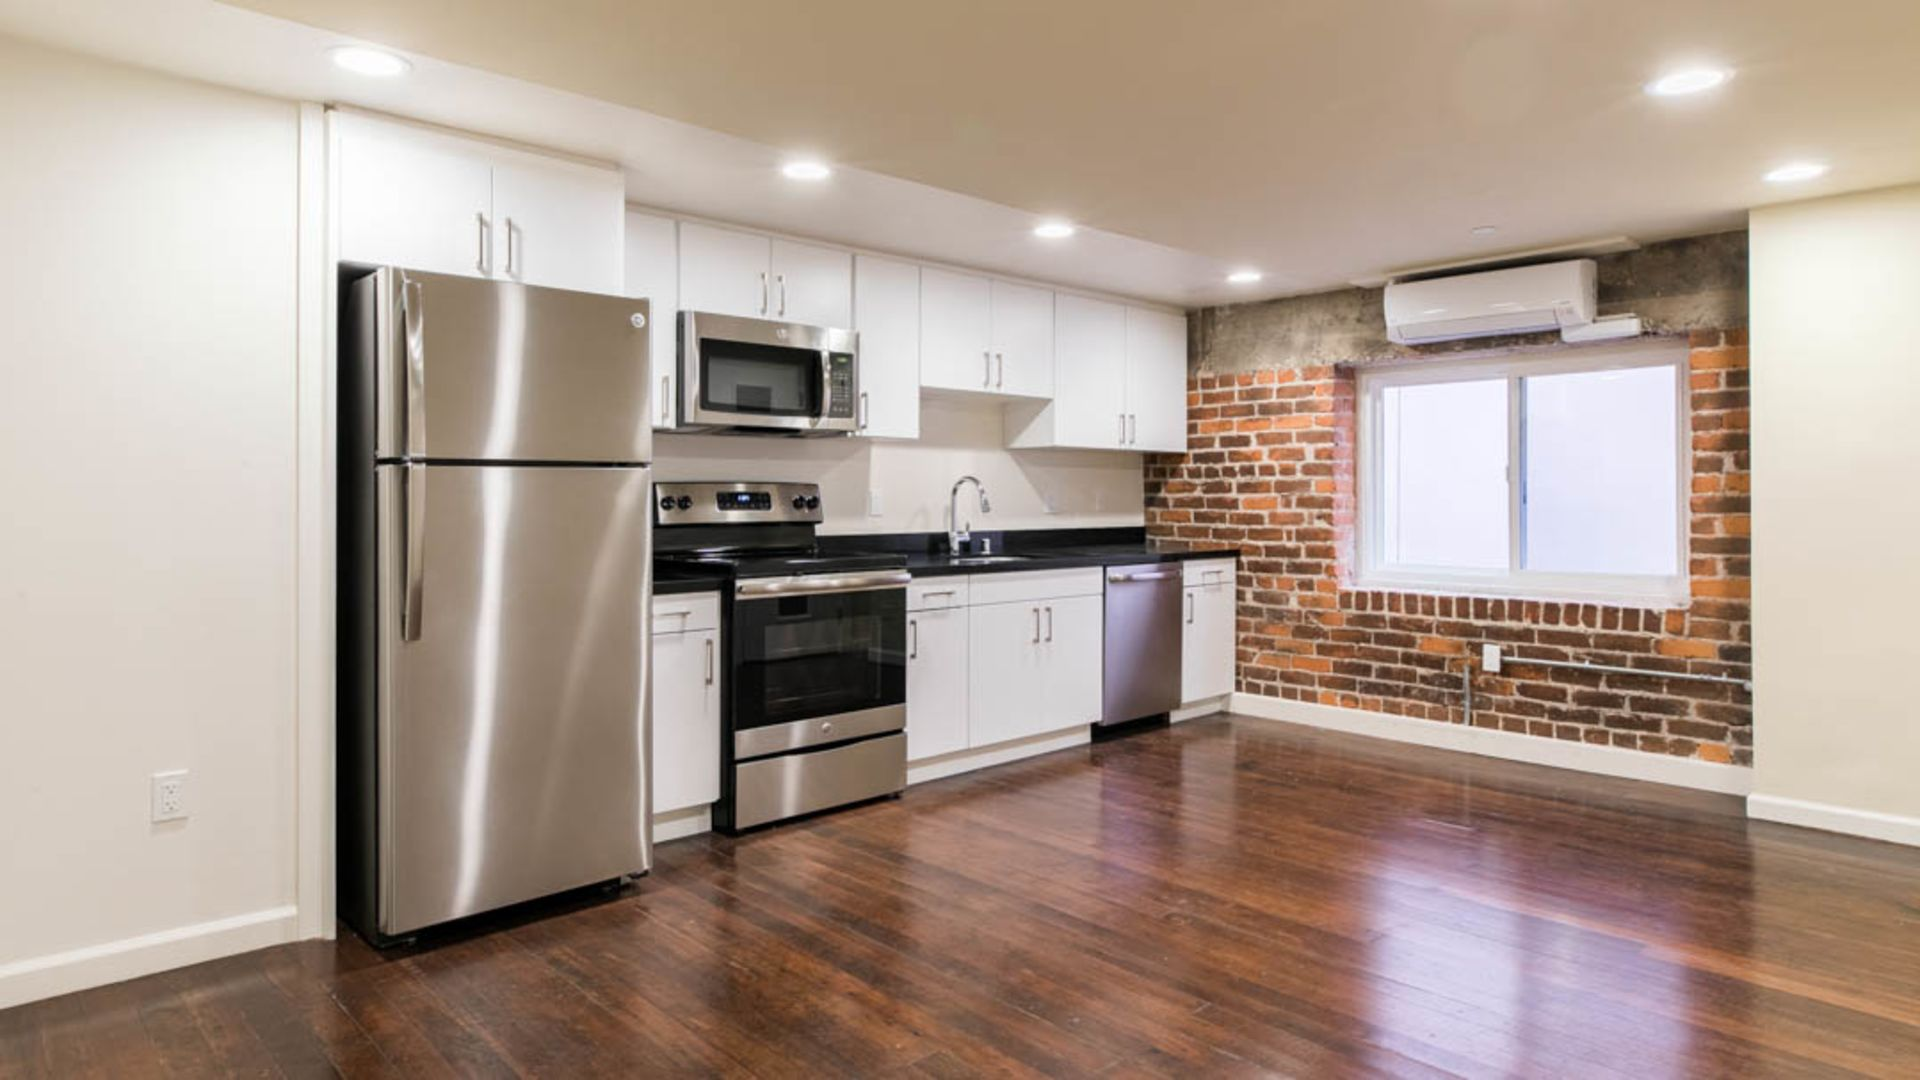 ... Vintage At 425 Broadway Apartments   Kitchen And Living Area ...